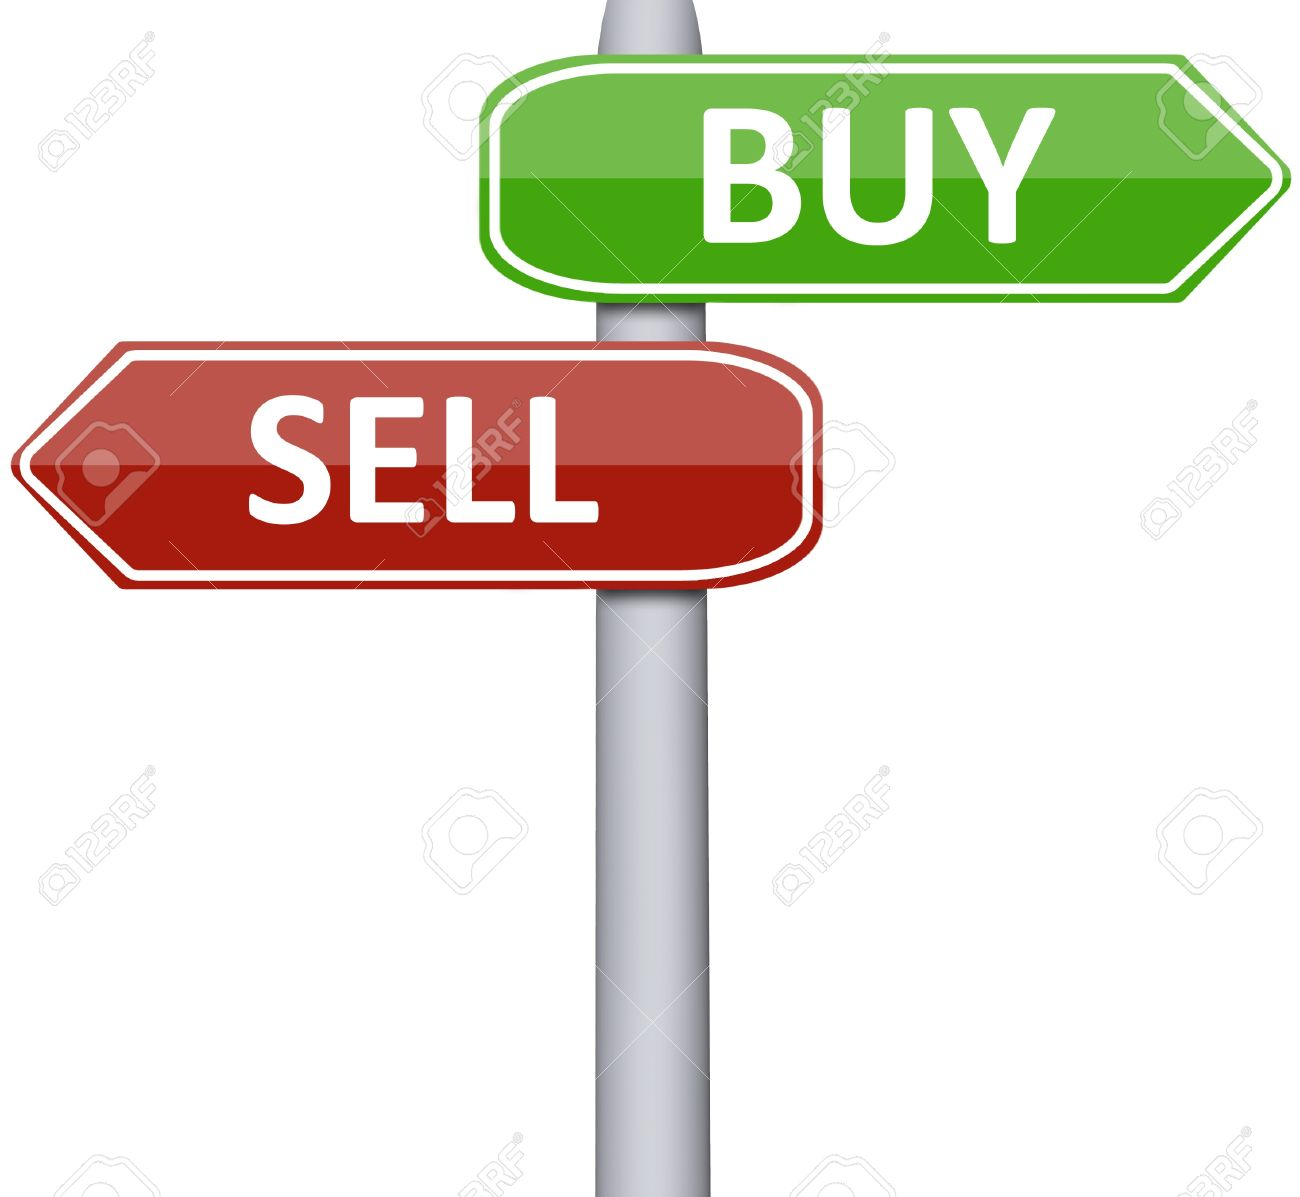 Buy and sell on road sign Stock Photo - 10063203